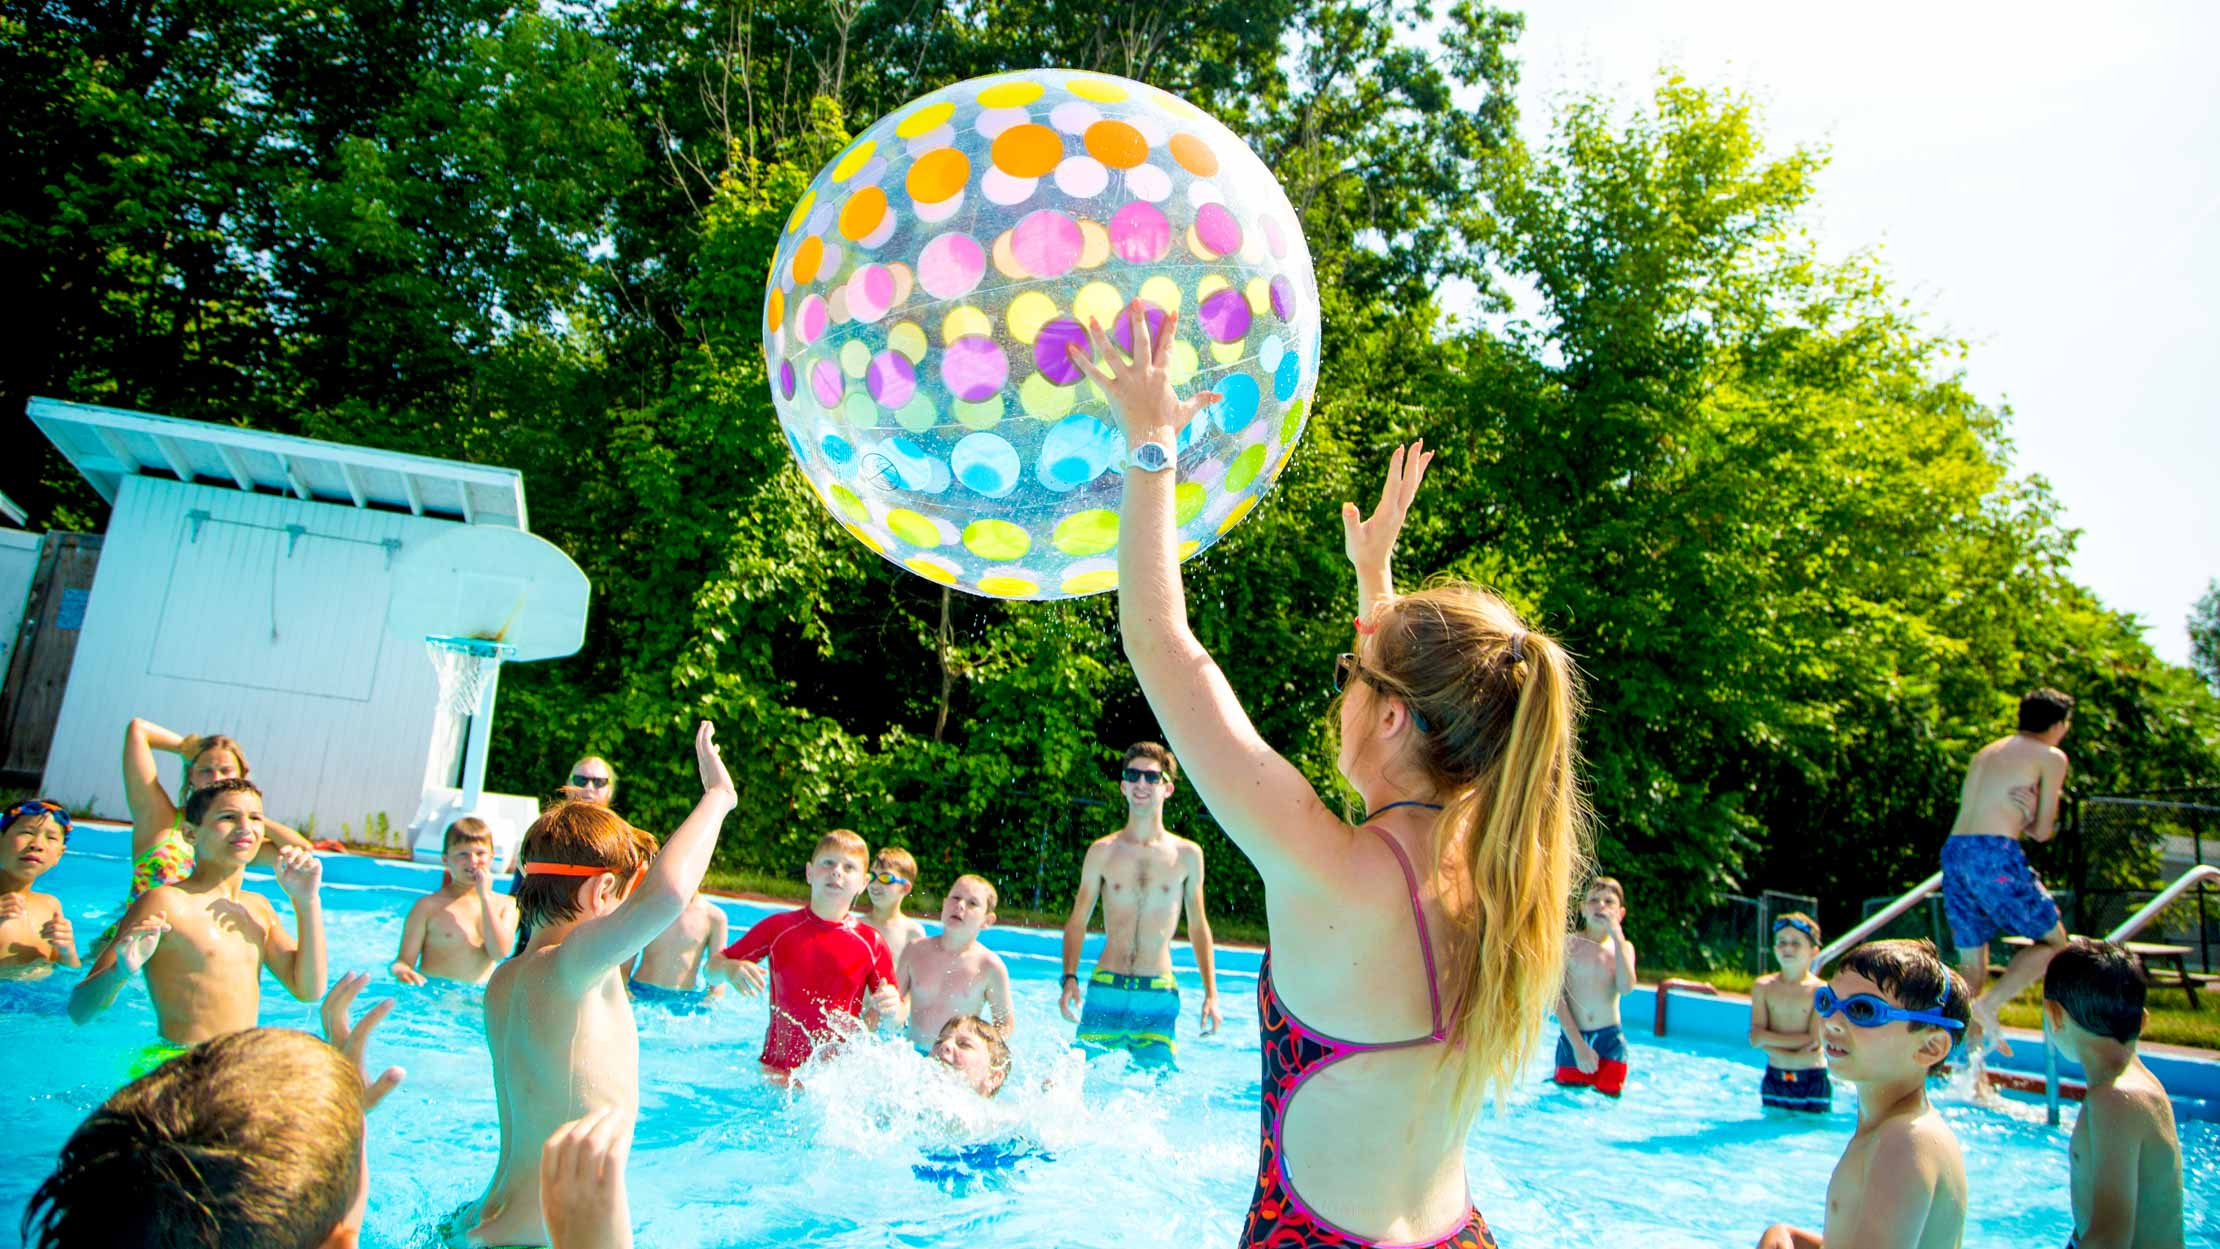 Campers play with inflatable ball in swimming pool